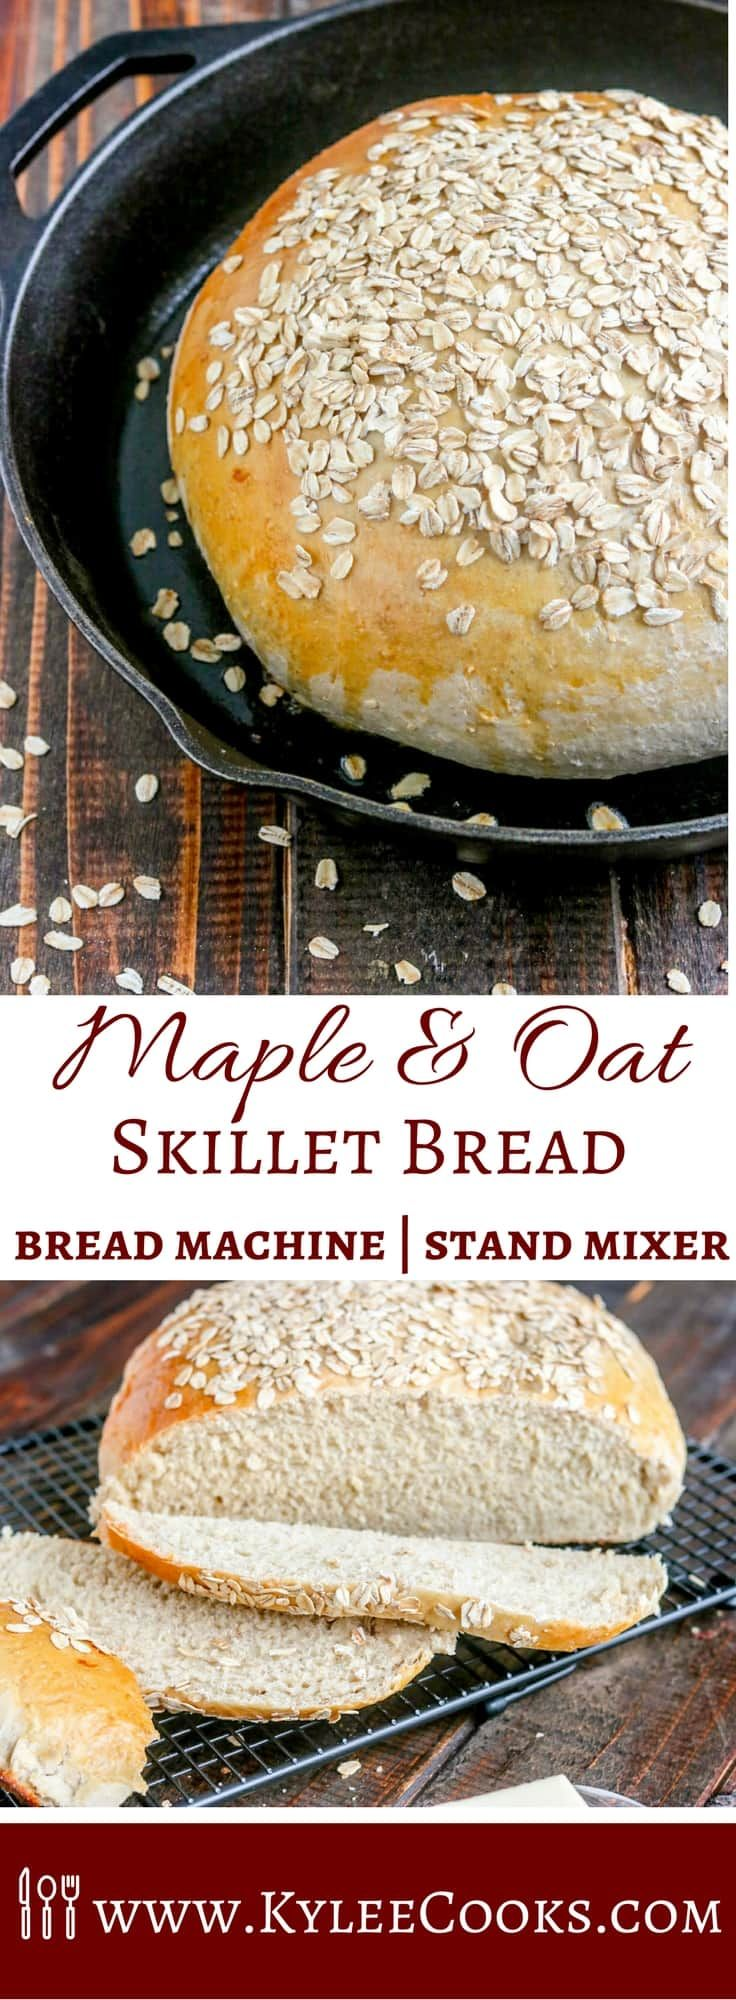 A gorgeous loaf, with a delicious crumb! This Maple Oat Skillet Bread is hearty, delicious and perfect for toasting, sandwiches, or eating with soup. Yum!